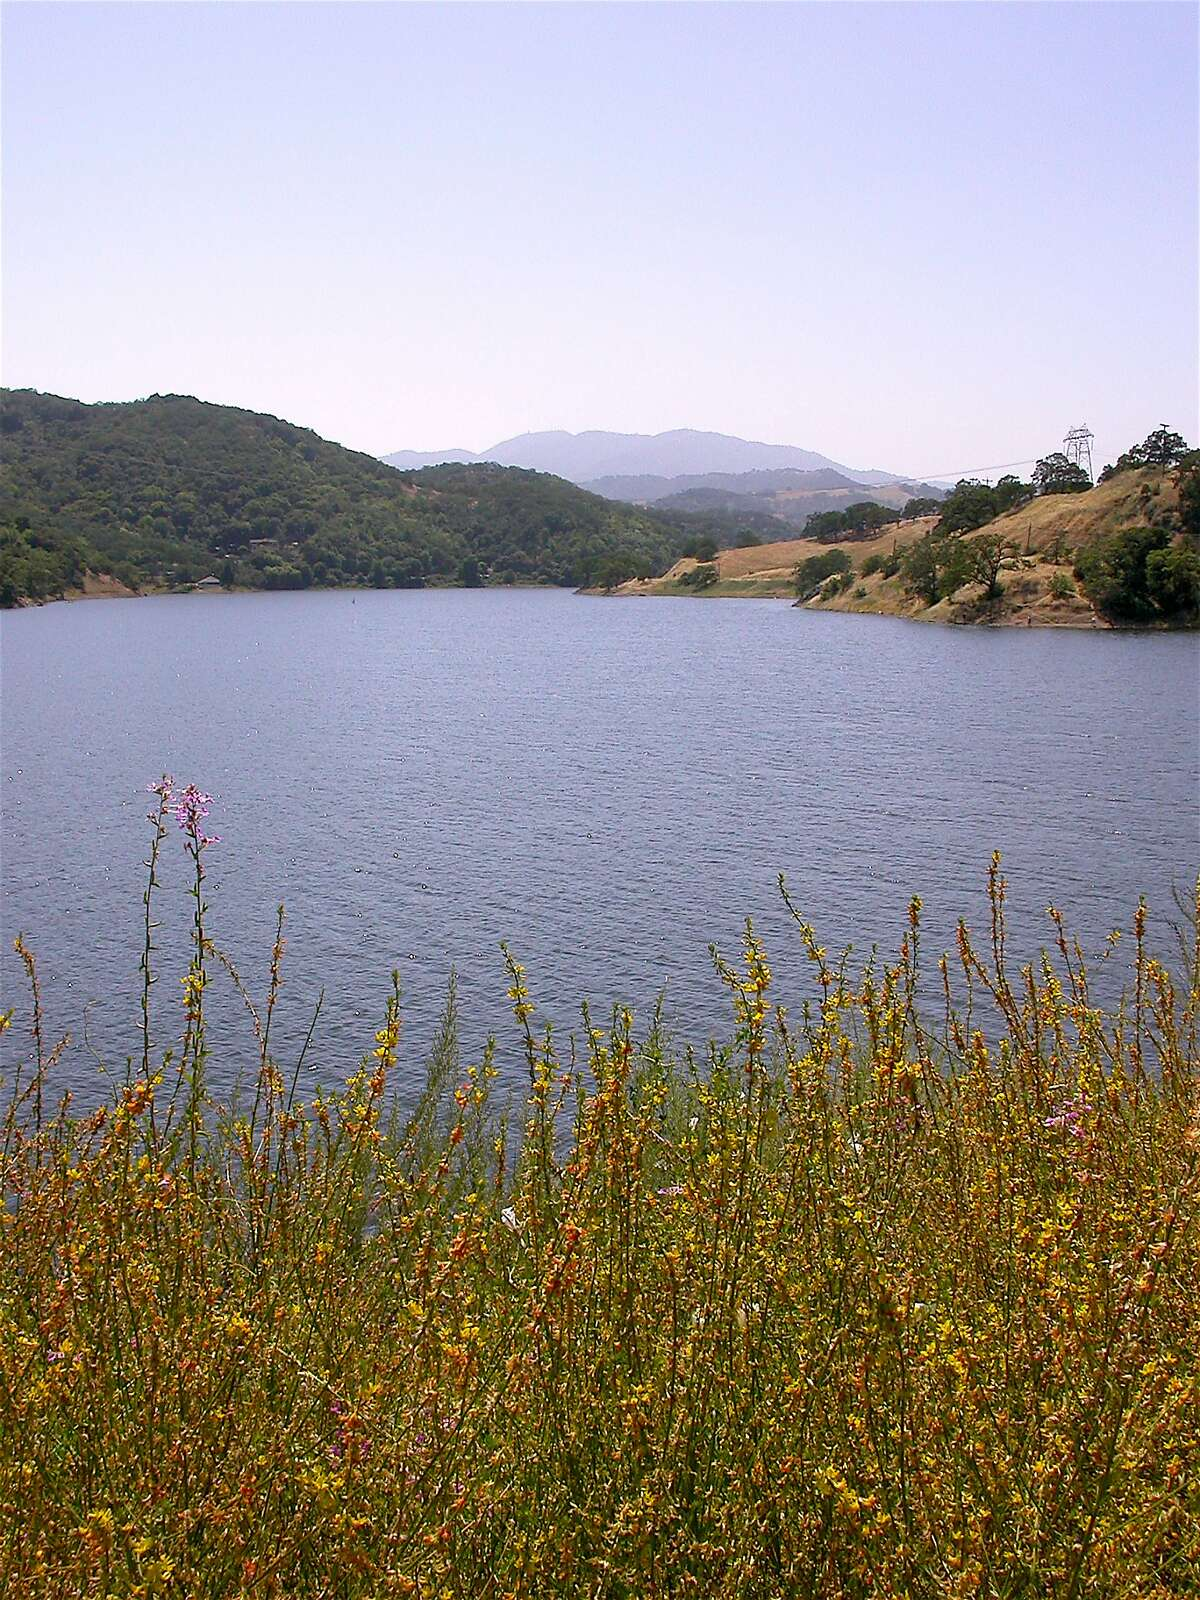 A full Chesbro Reservoir west of Morgan Hill with its shores lined by an array of tiny wildflower blooms. In the Bay Area, nearly all lakes are now full, with the first wildflowers of the season emerging, projected to peak in April.